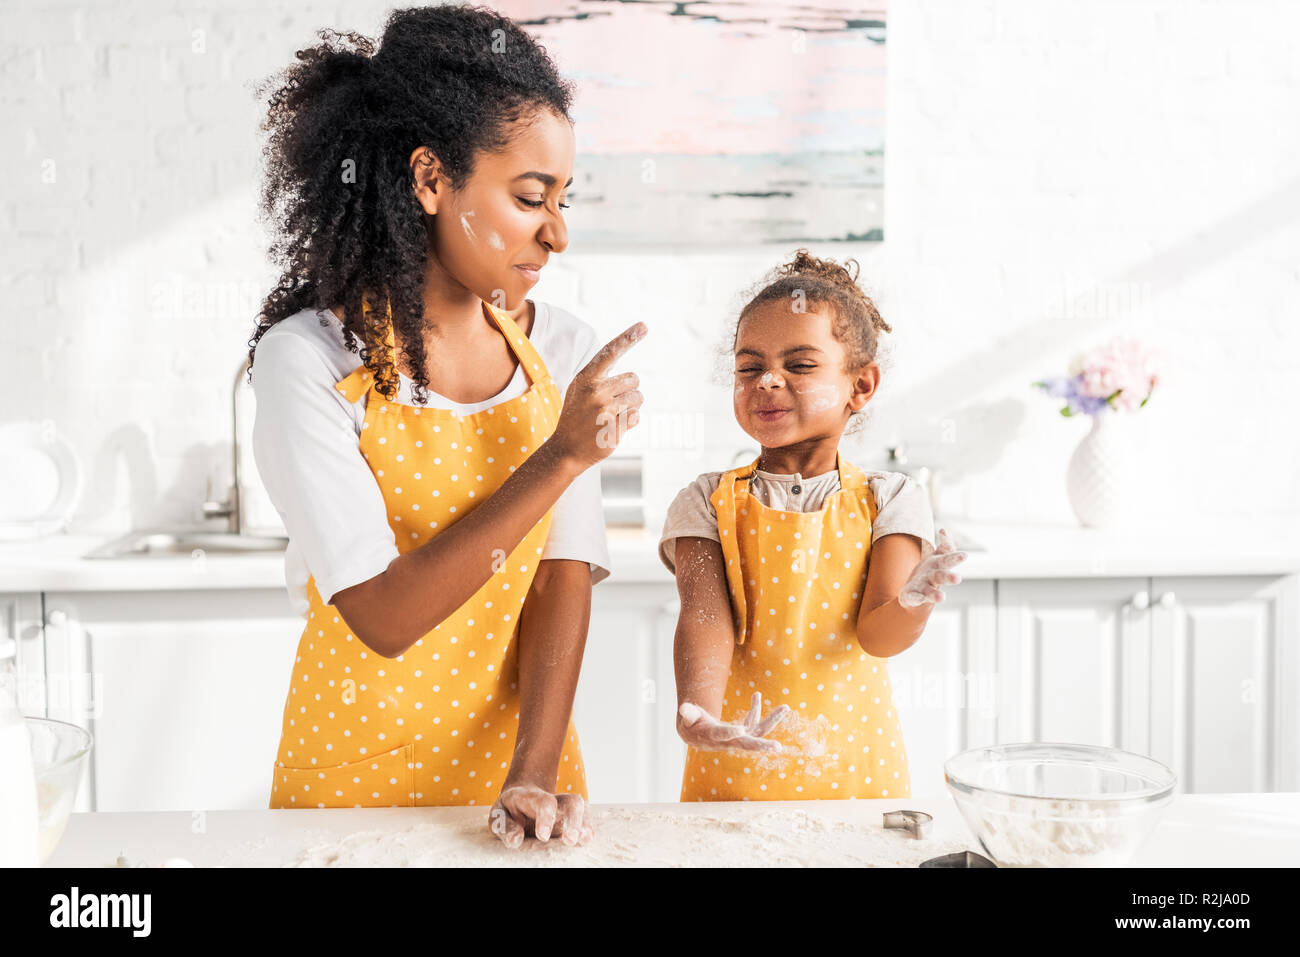 grimacing african american mother and daughter preparing dough and having fun with flour in kitchen - Stock Image